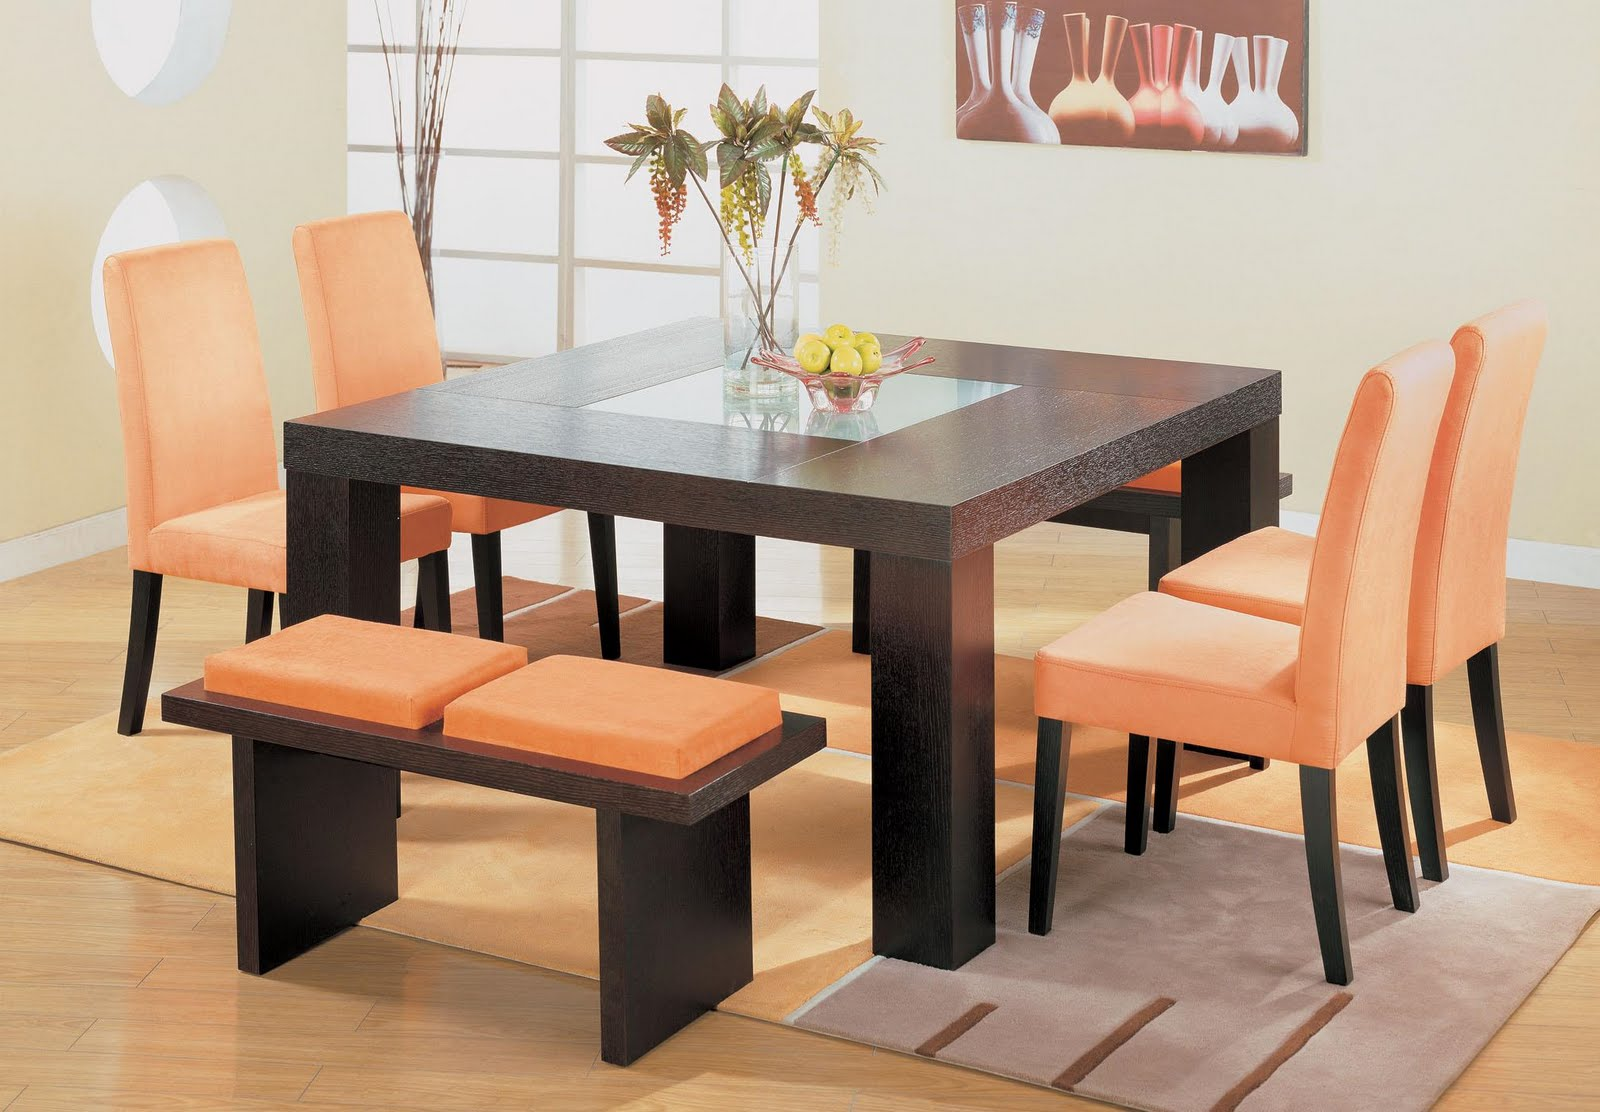 dining room decor  dining table design Square Dining Table Design for Your Home Décor Square Dining table design 1